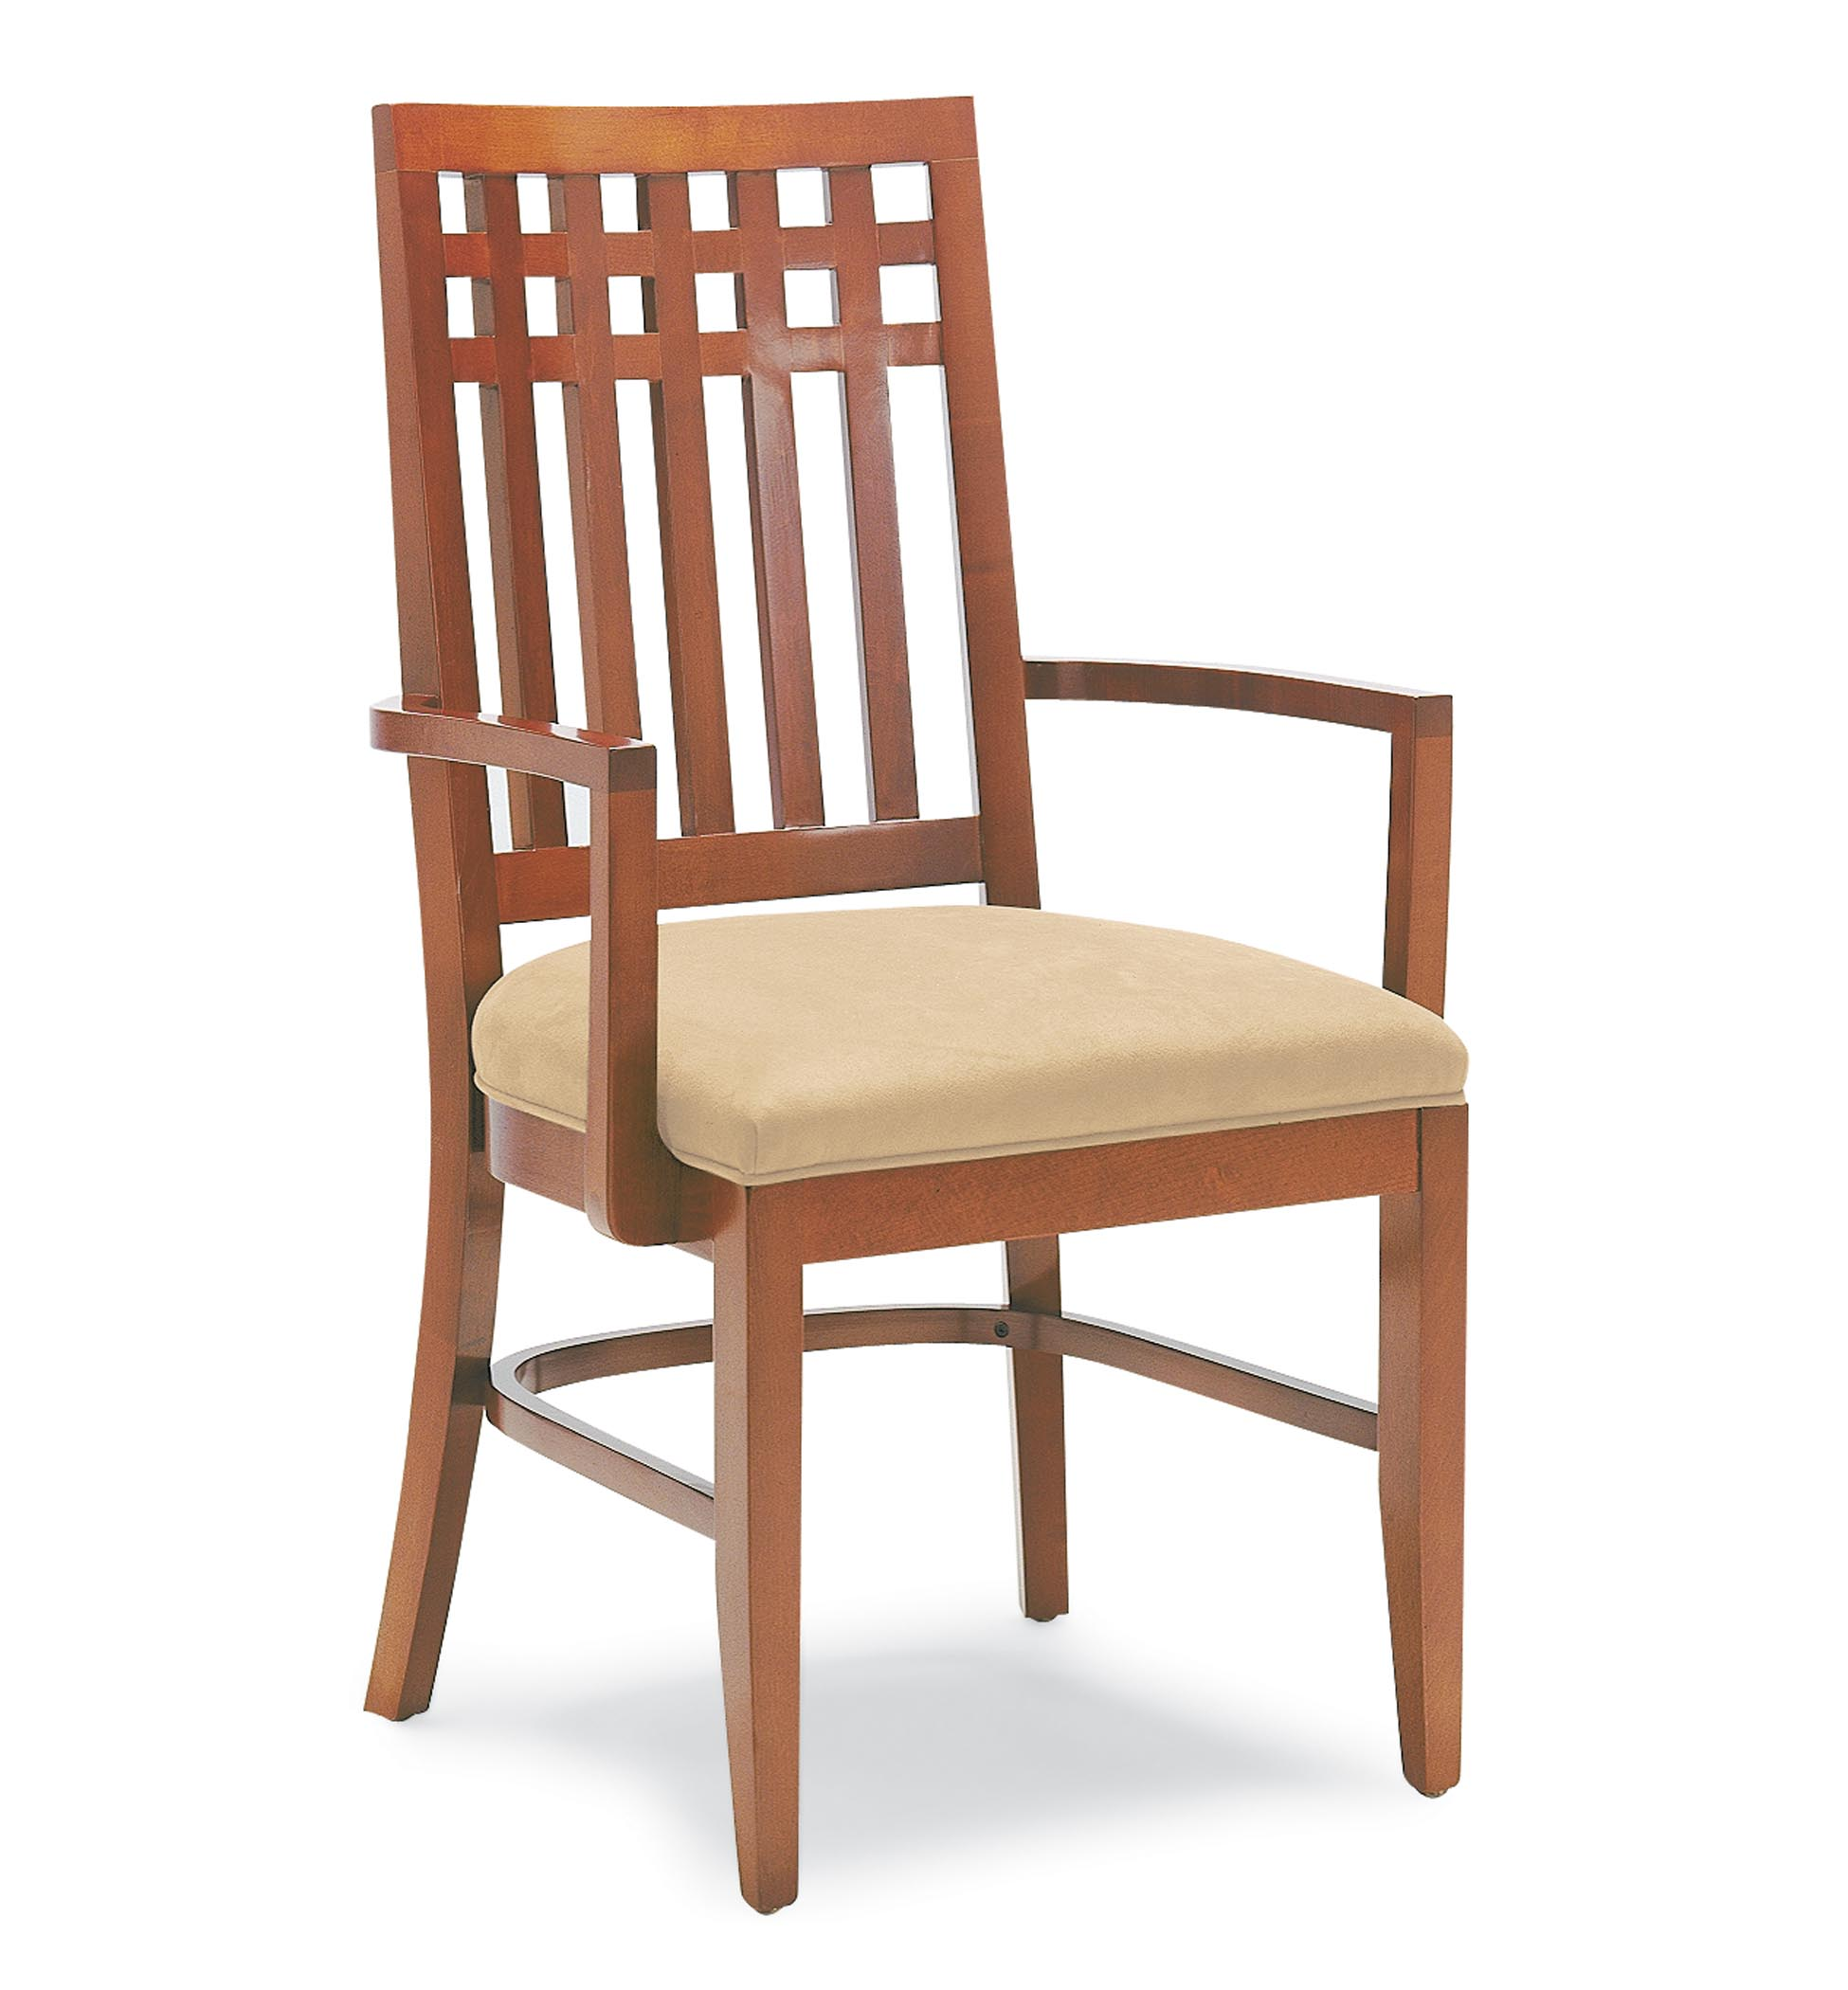 Wood Arm Chairs ~ Wood arm chair